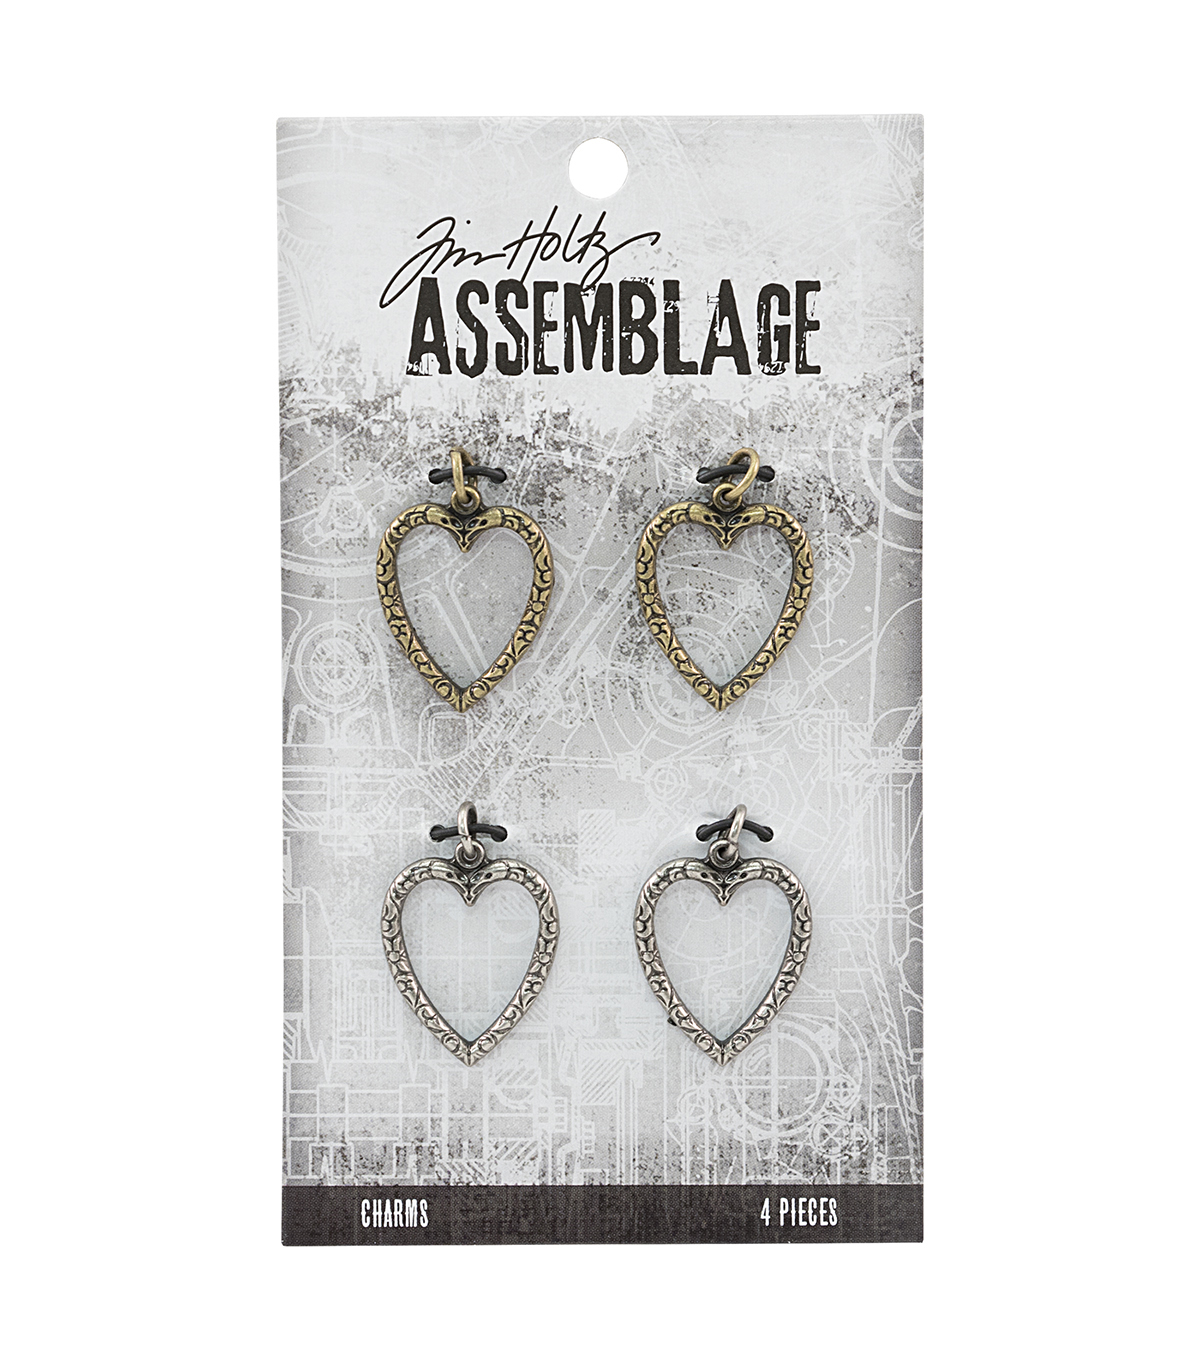 Tim Holtz® Assemblage 4 Pack 0.75'' Heart Link Charms